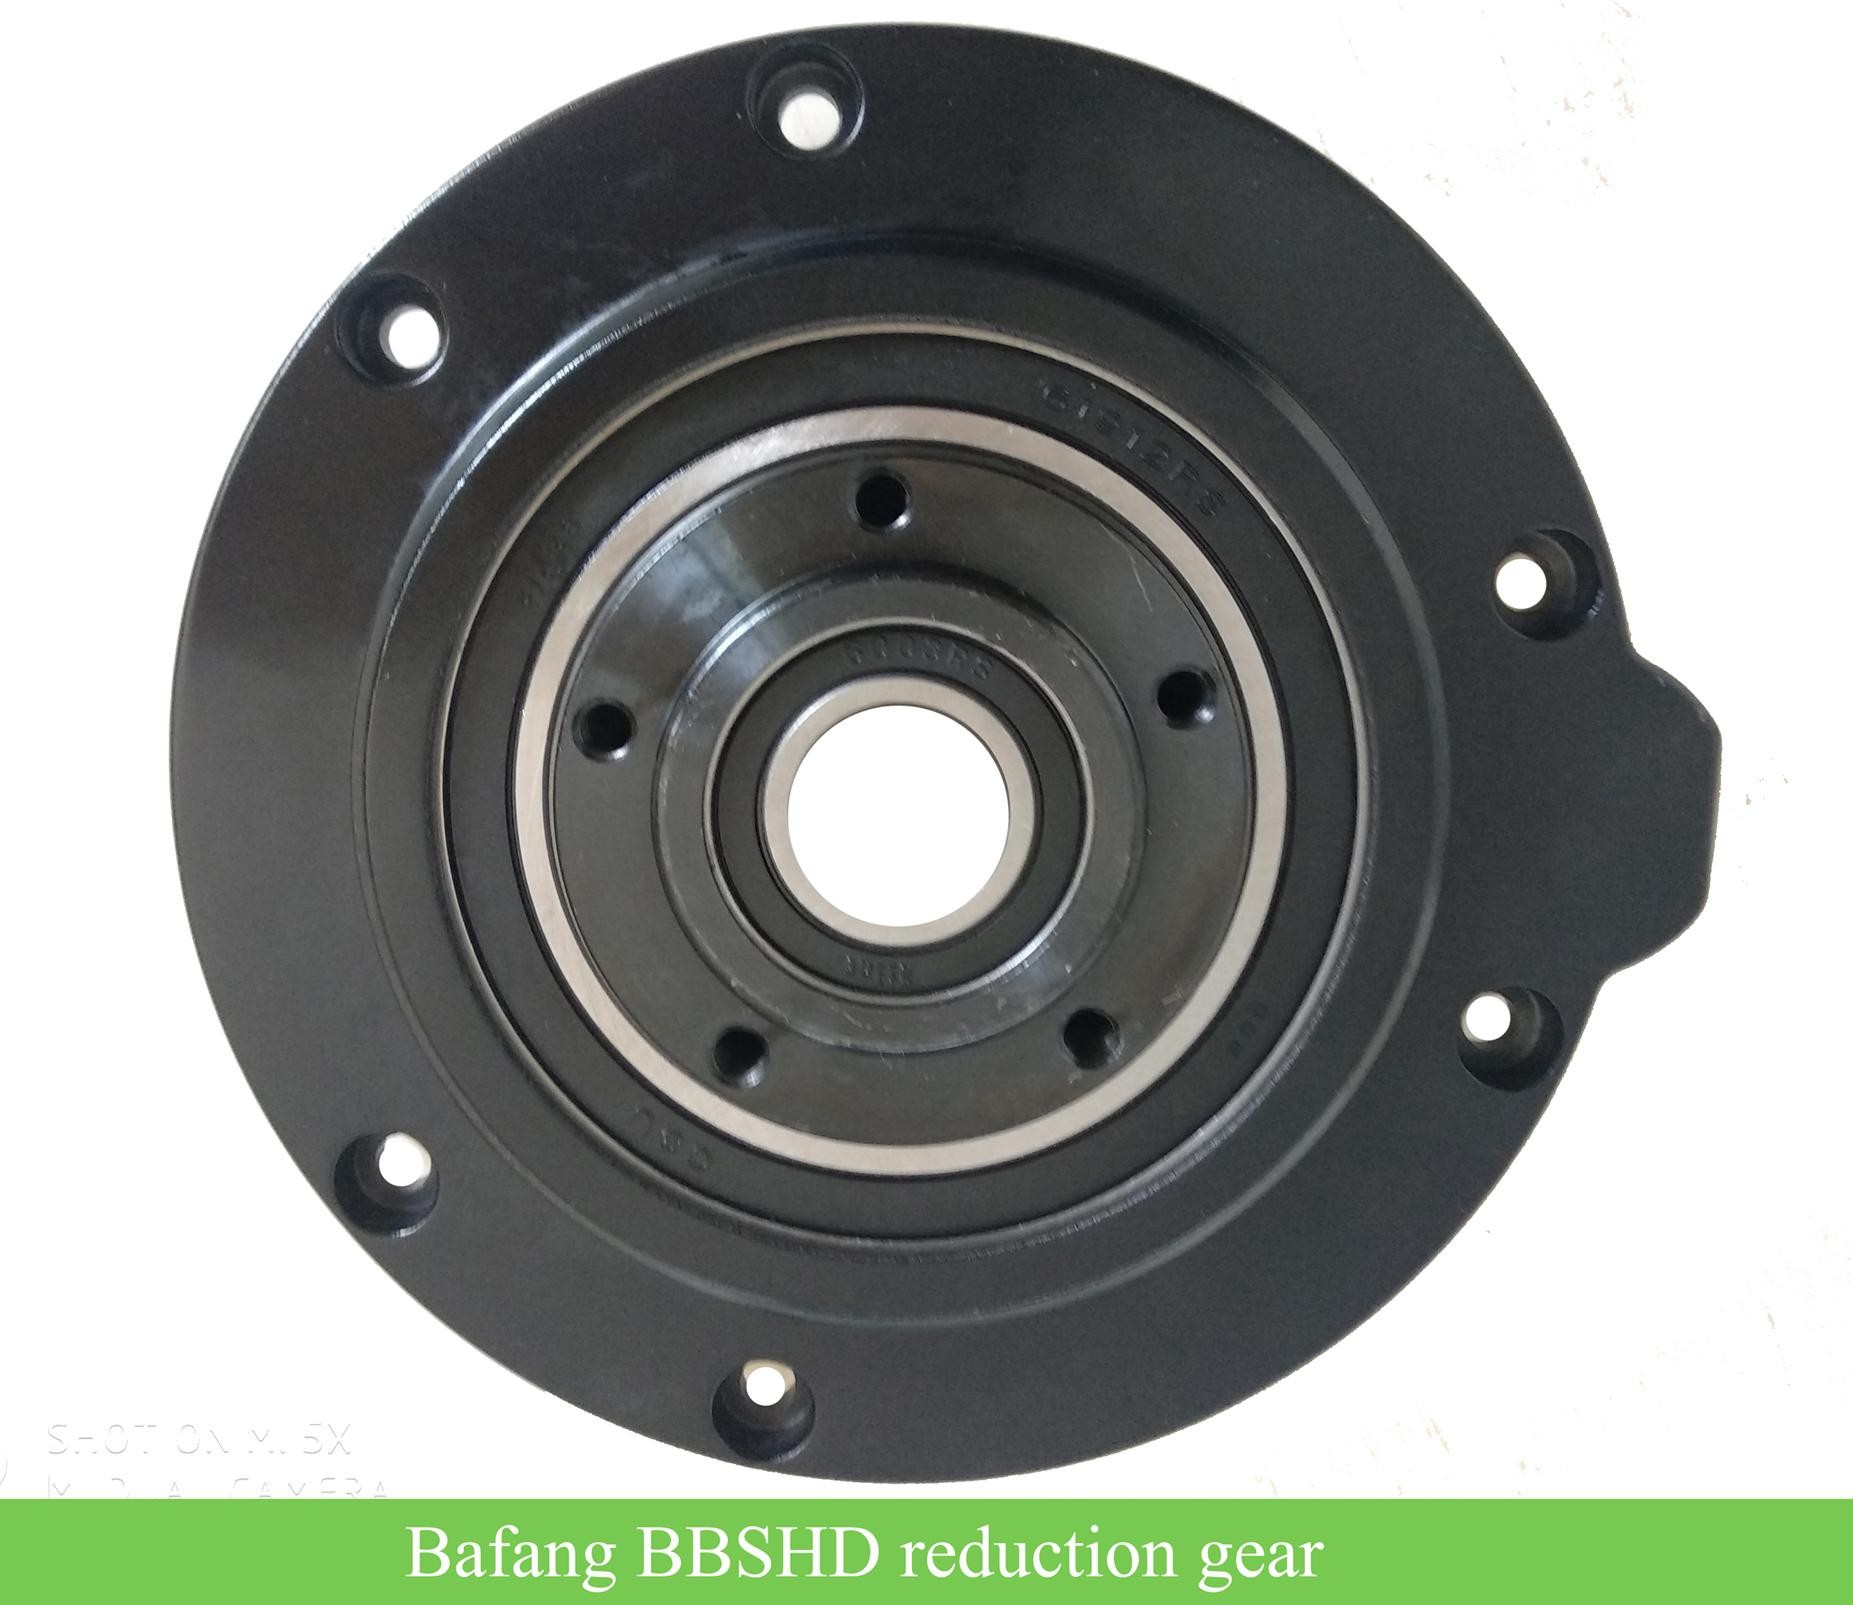 bafang bbshd replacement parts reduction gear and cover